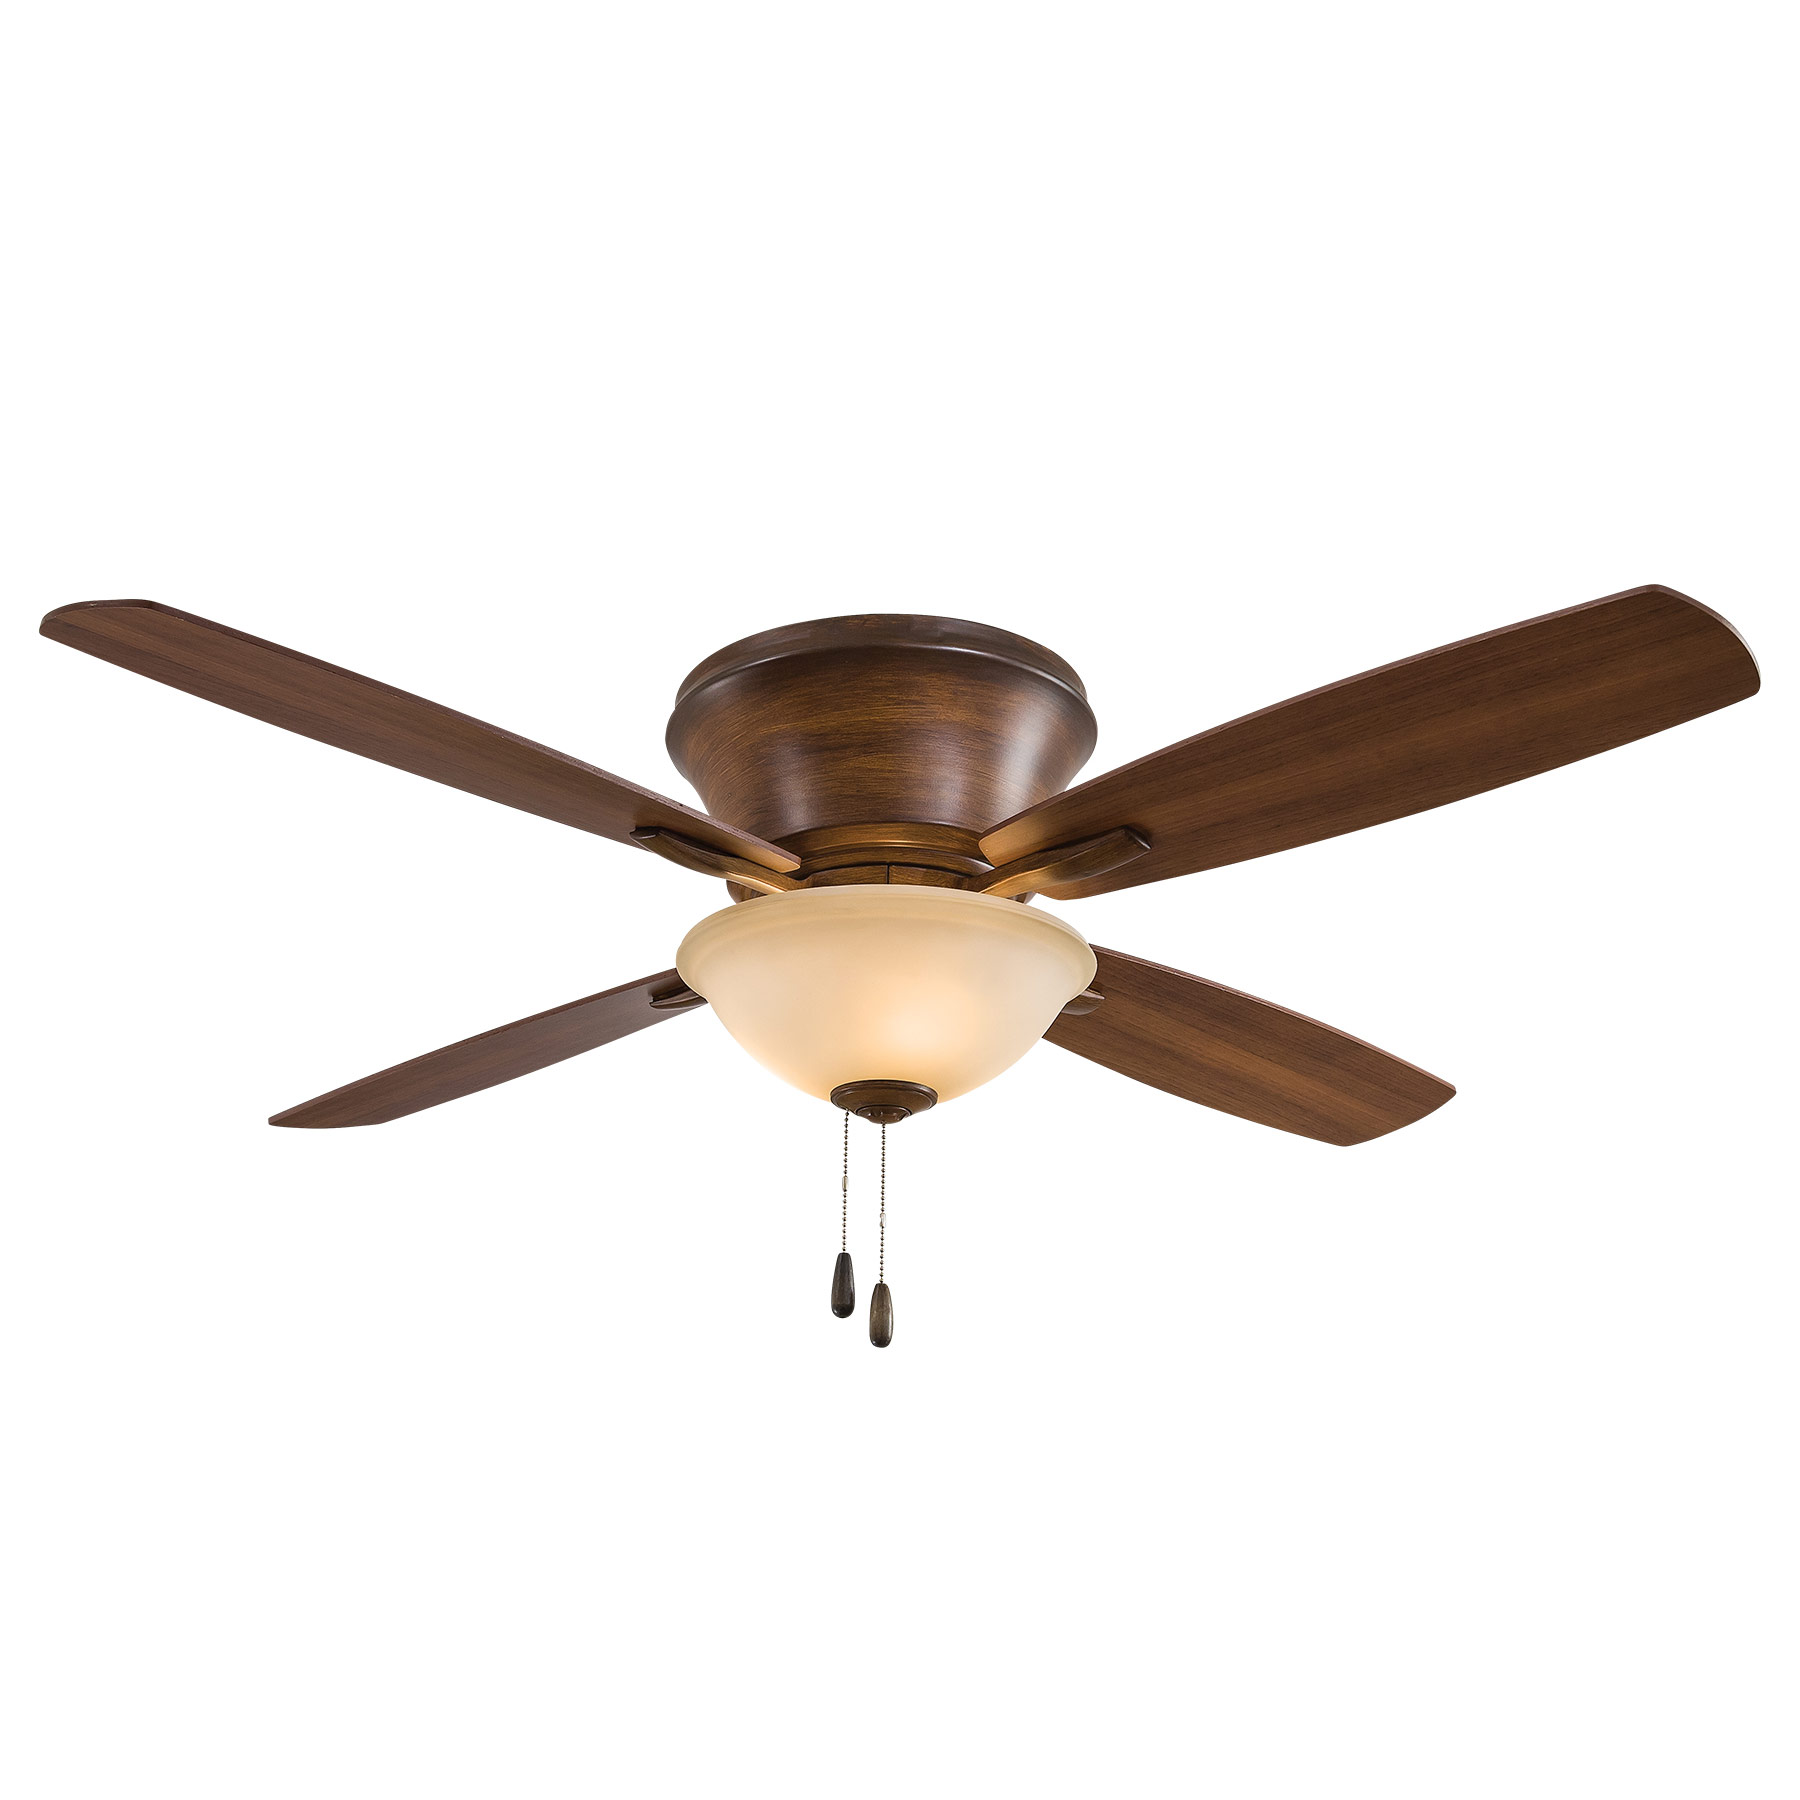 aire fan lun bn by index minka ceiling